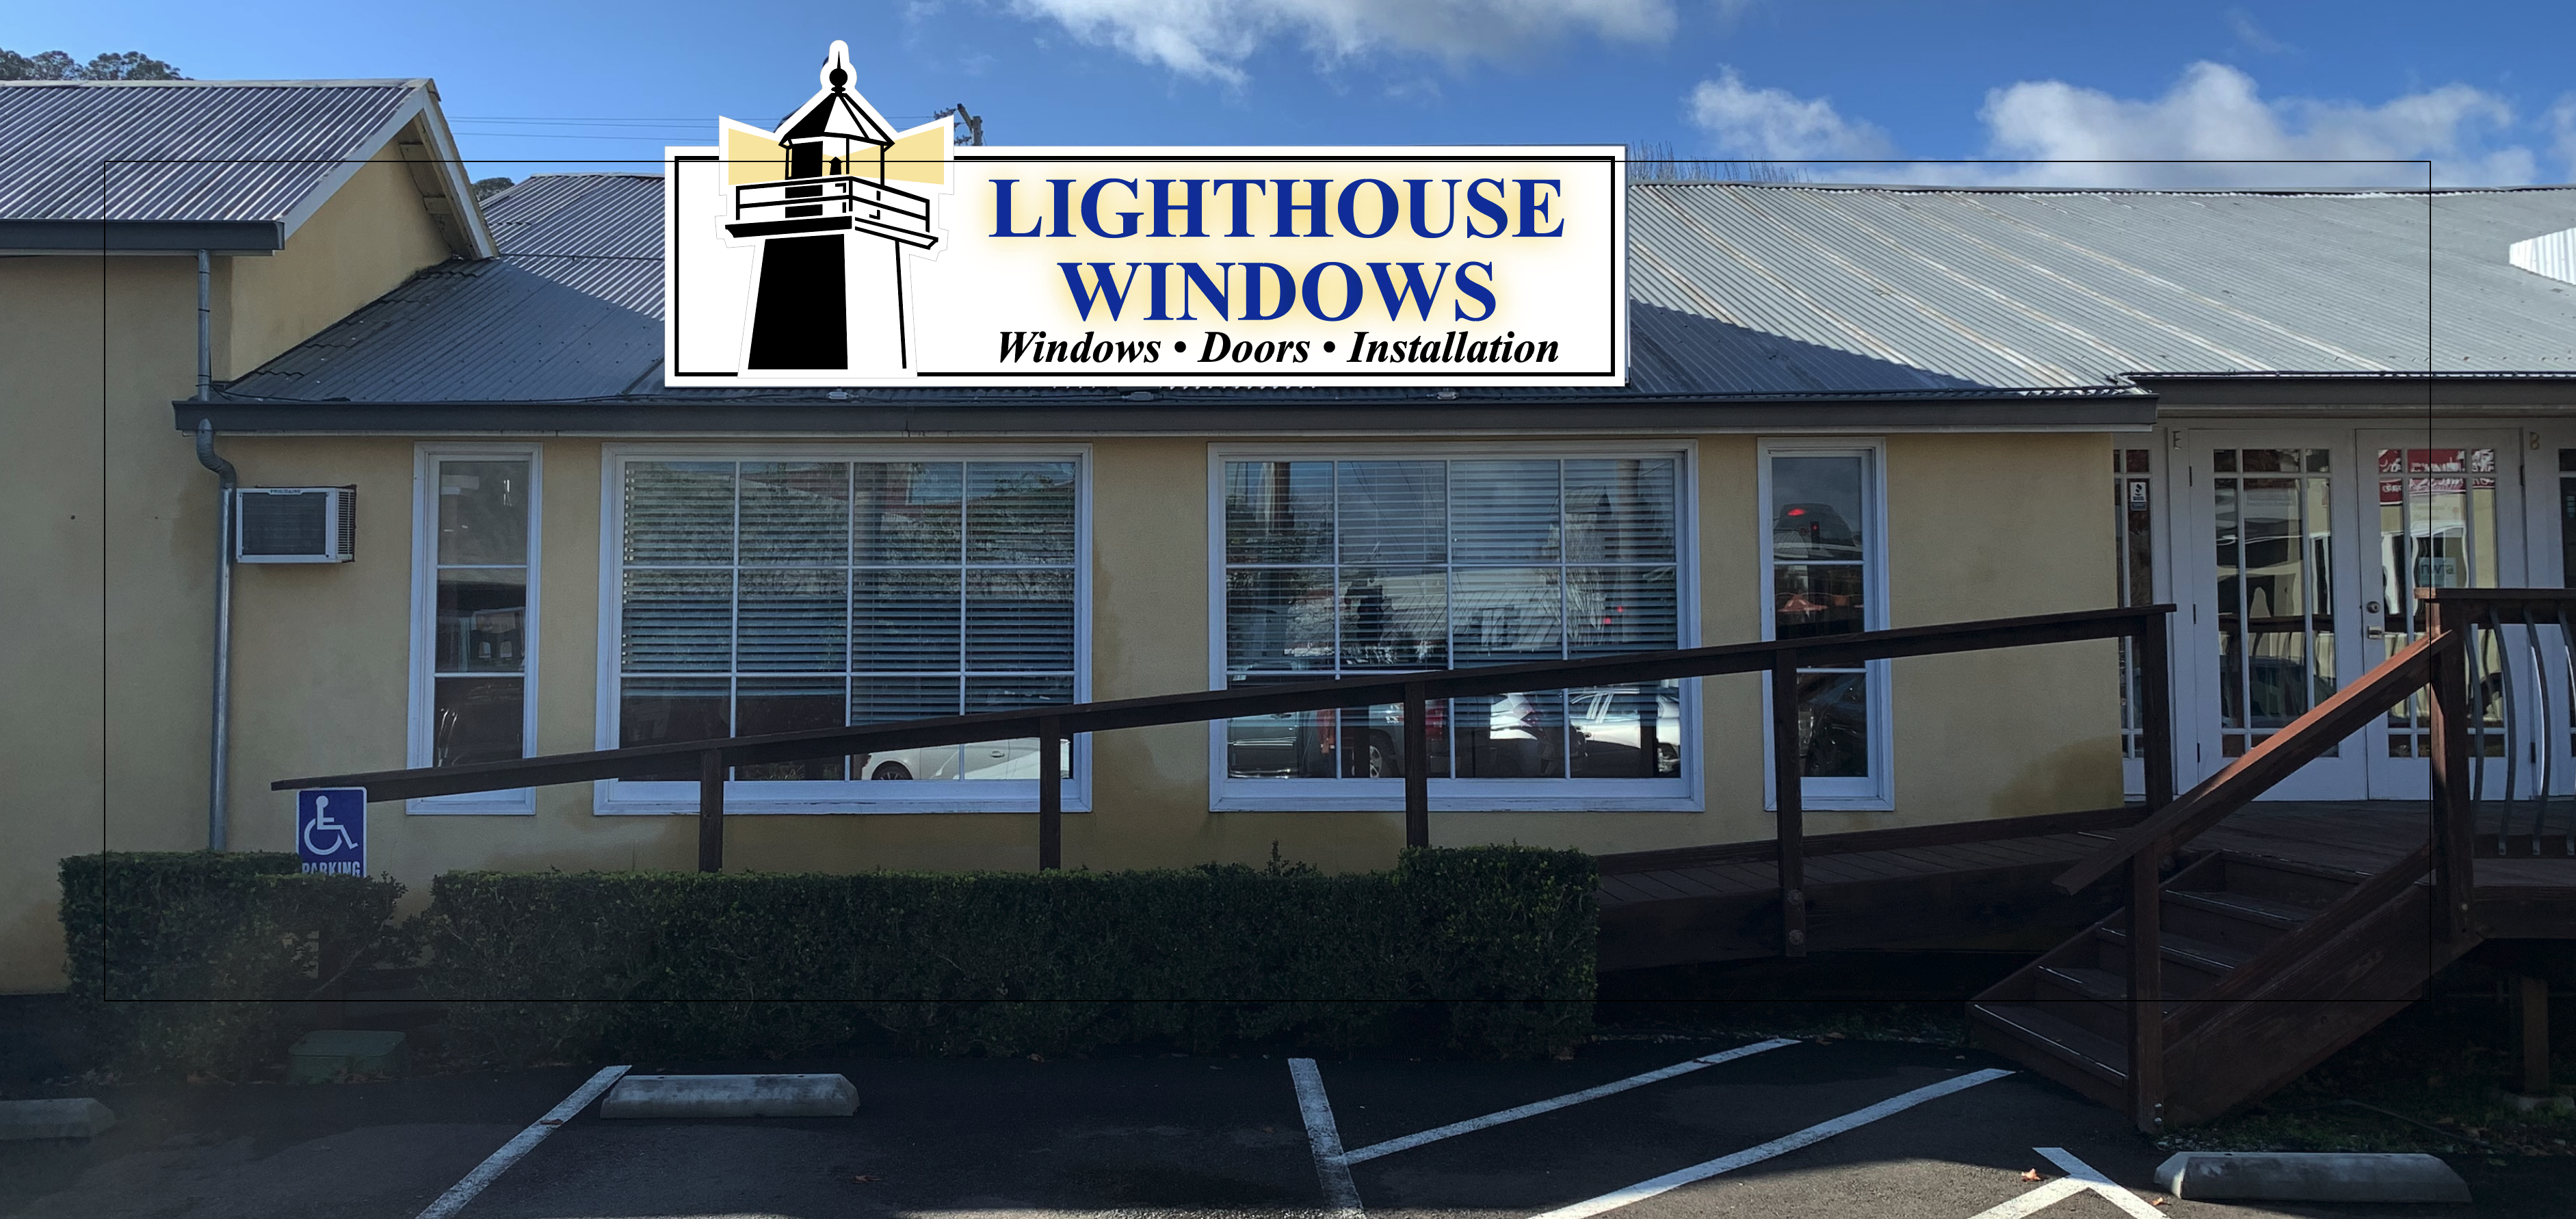 Lighthouse Windows Storefront 1